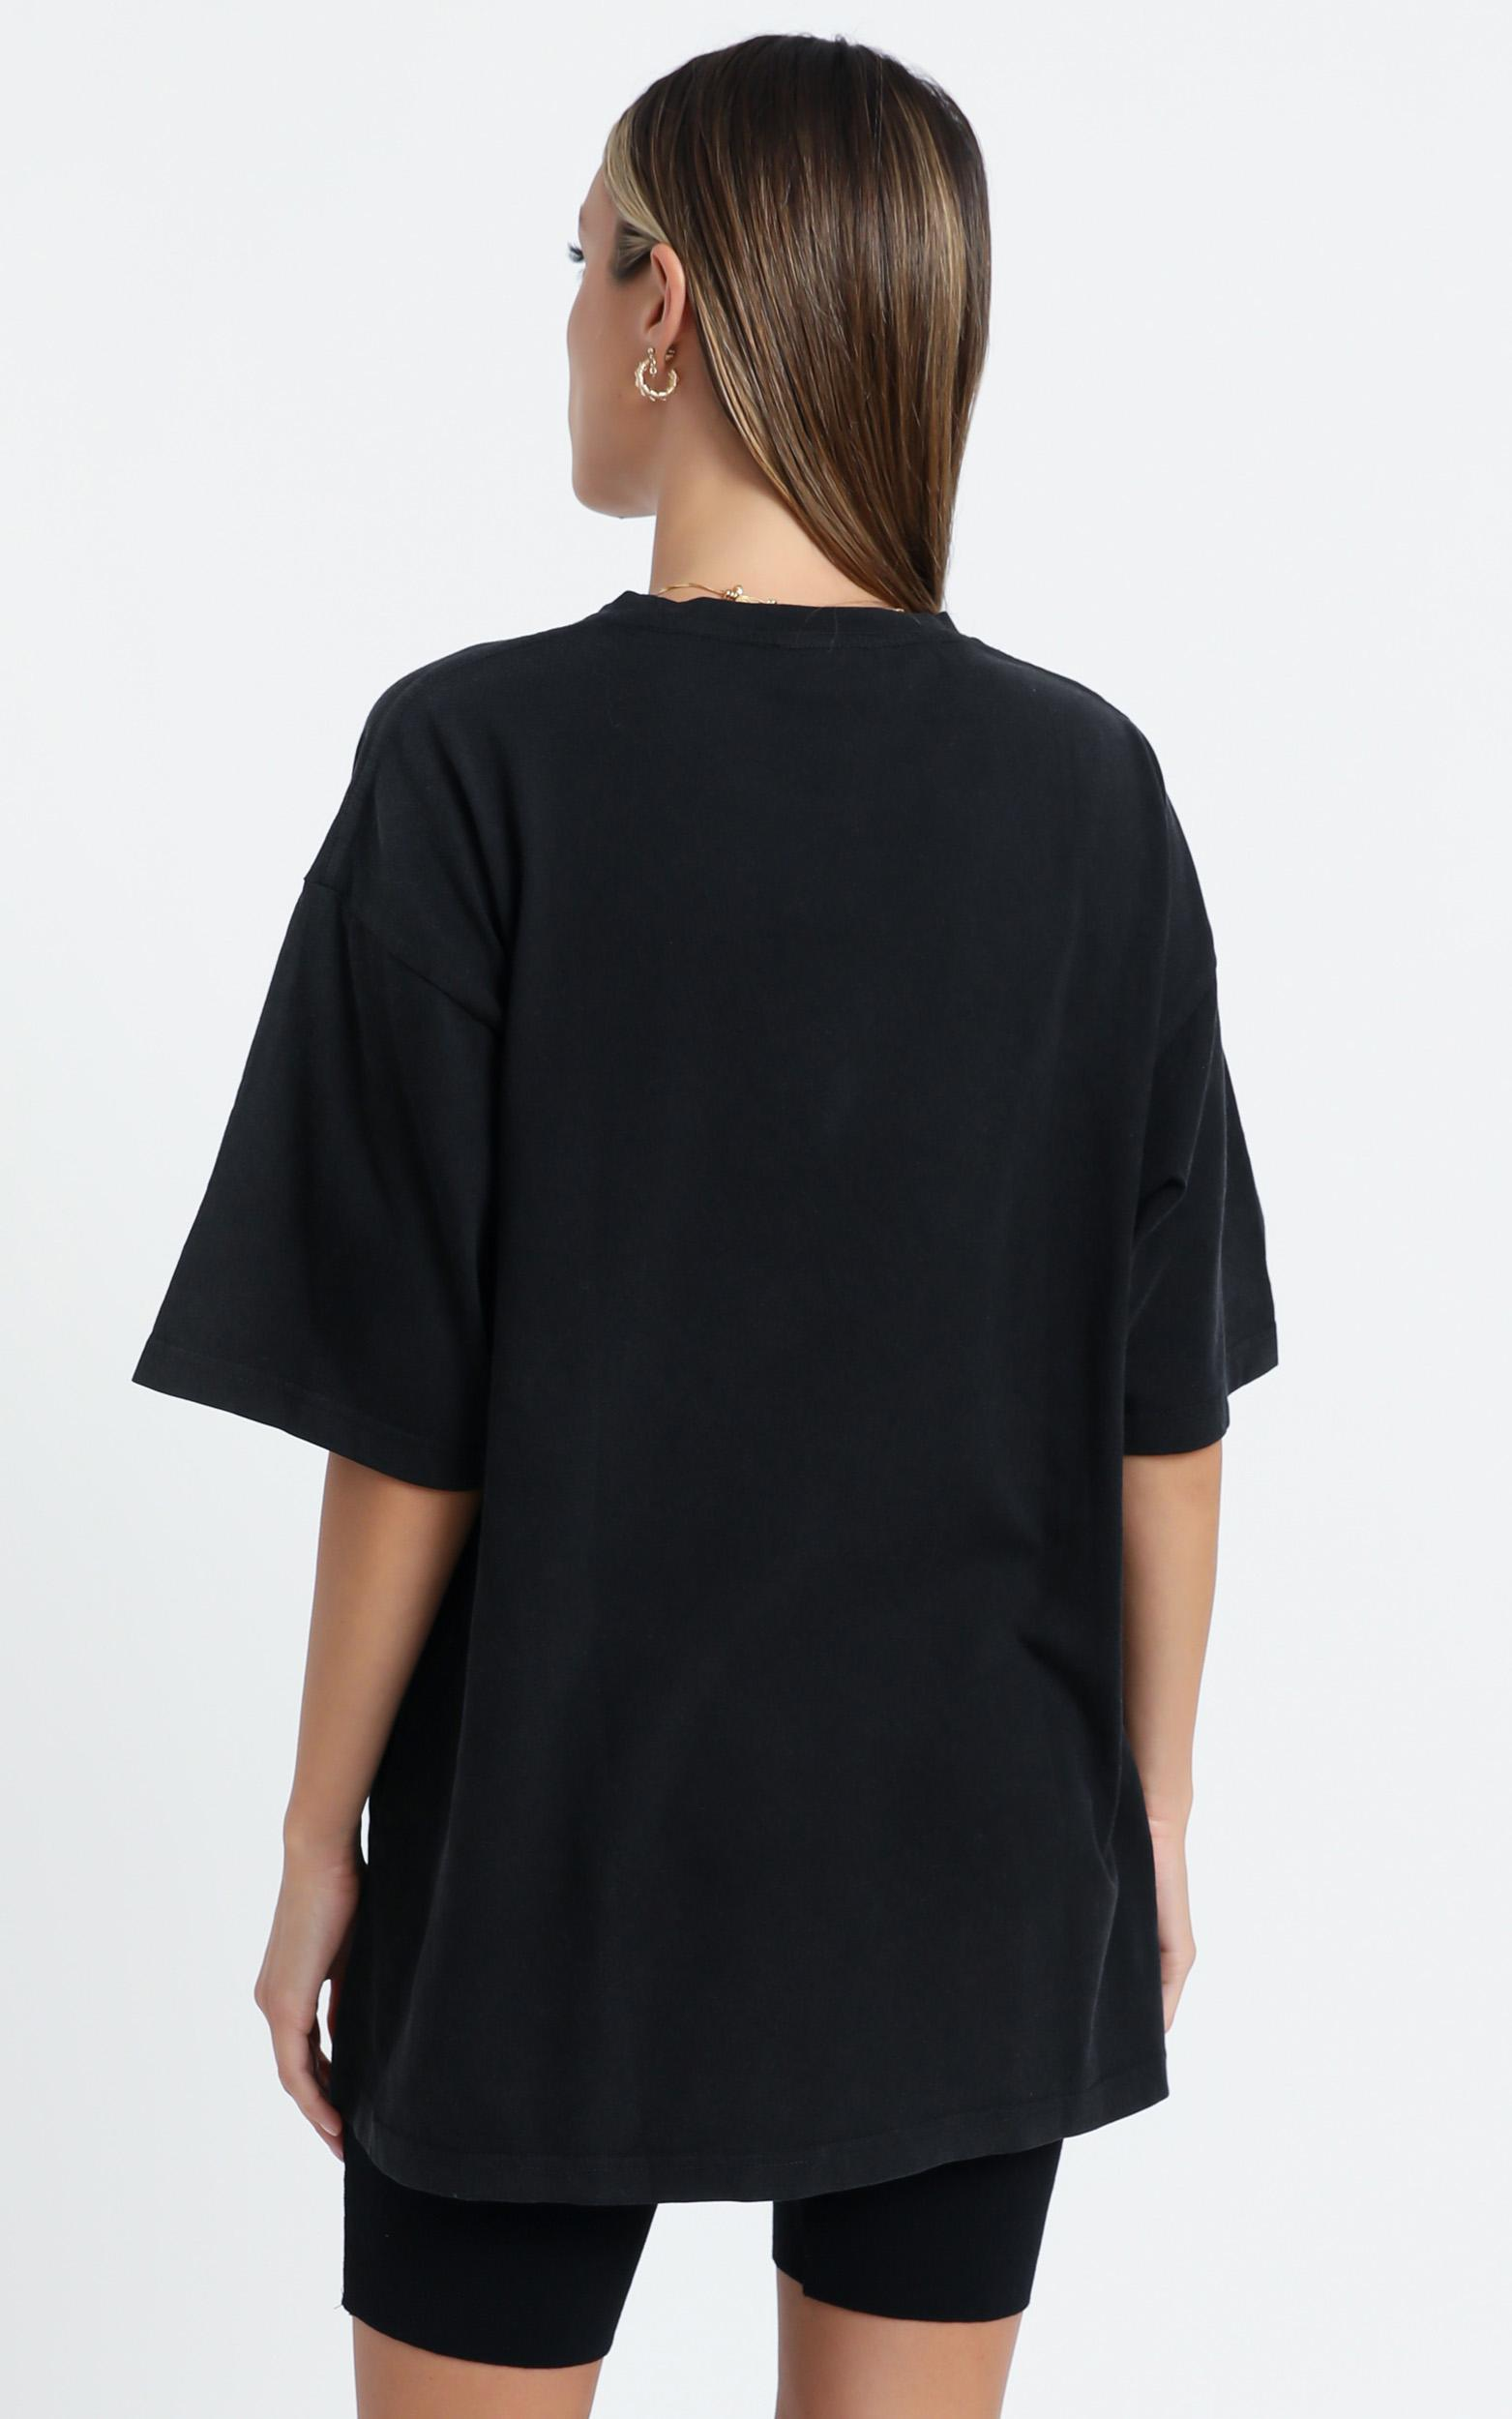 Carra Oversized Tee in  Black - 6 (XS), Black, hi-res image number null